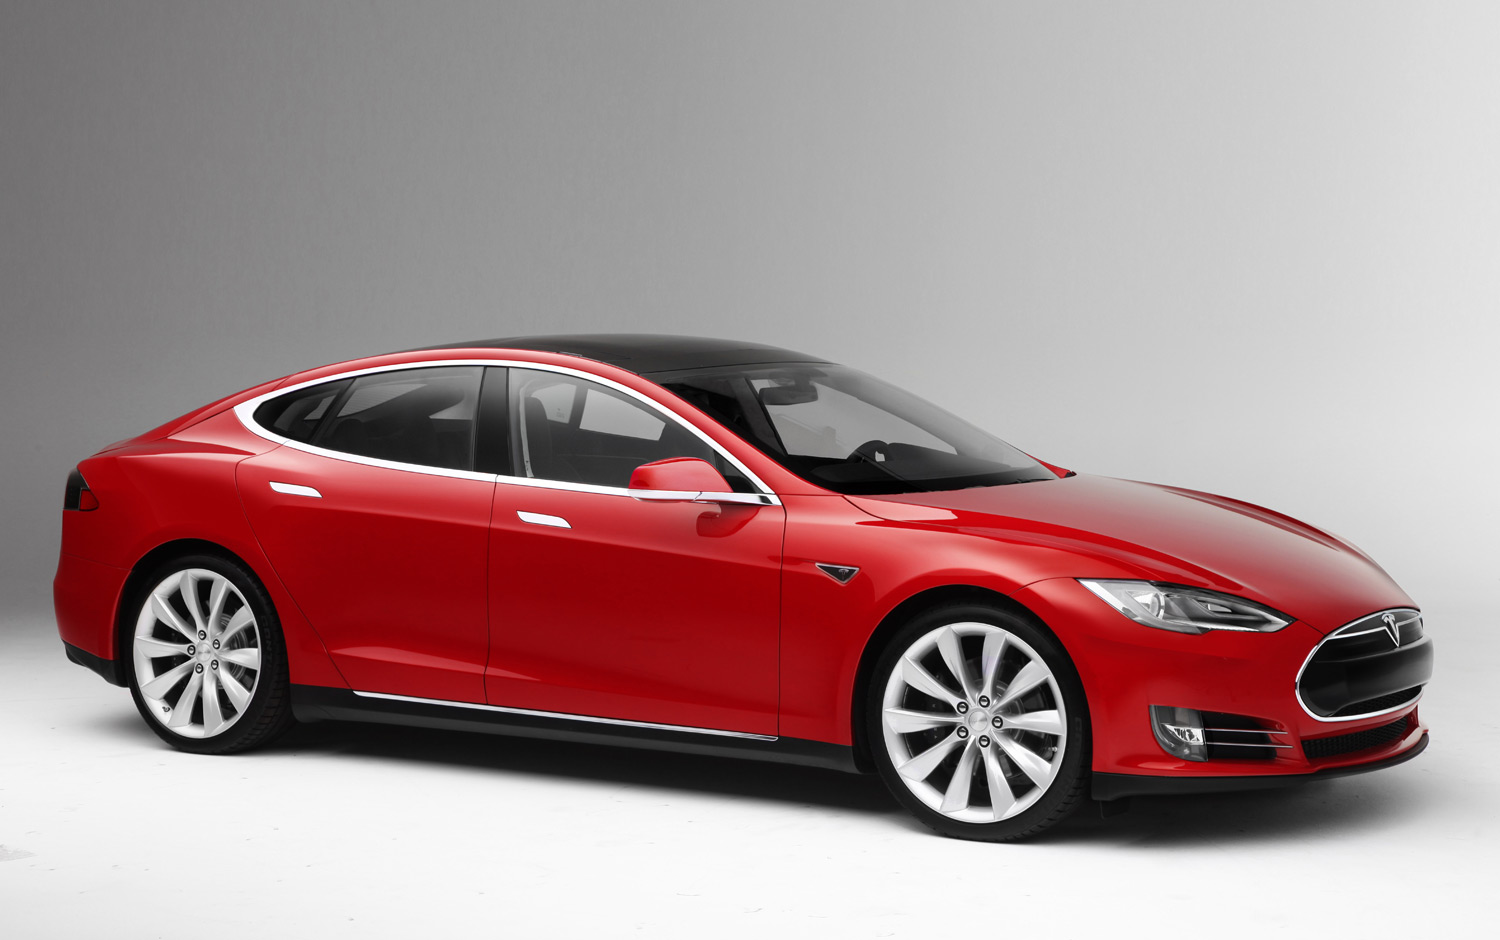 2013 tesla model s price automotive prices. Black Bedroom Furniture Sets. Home Design Ideas